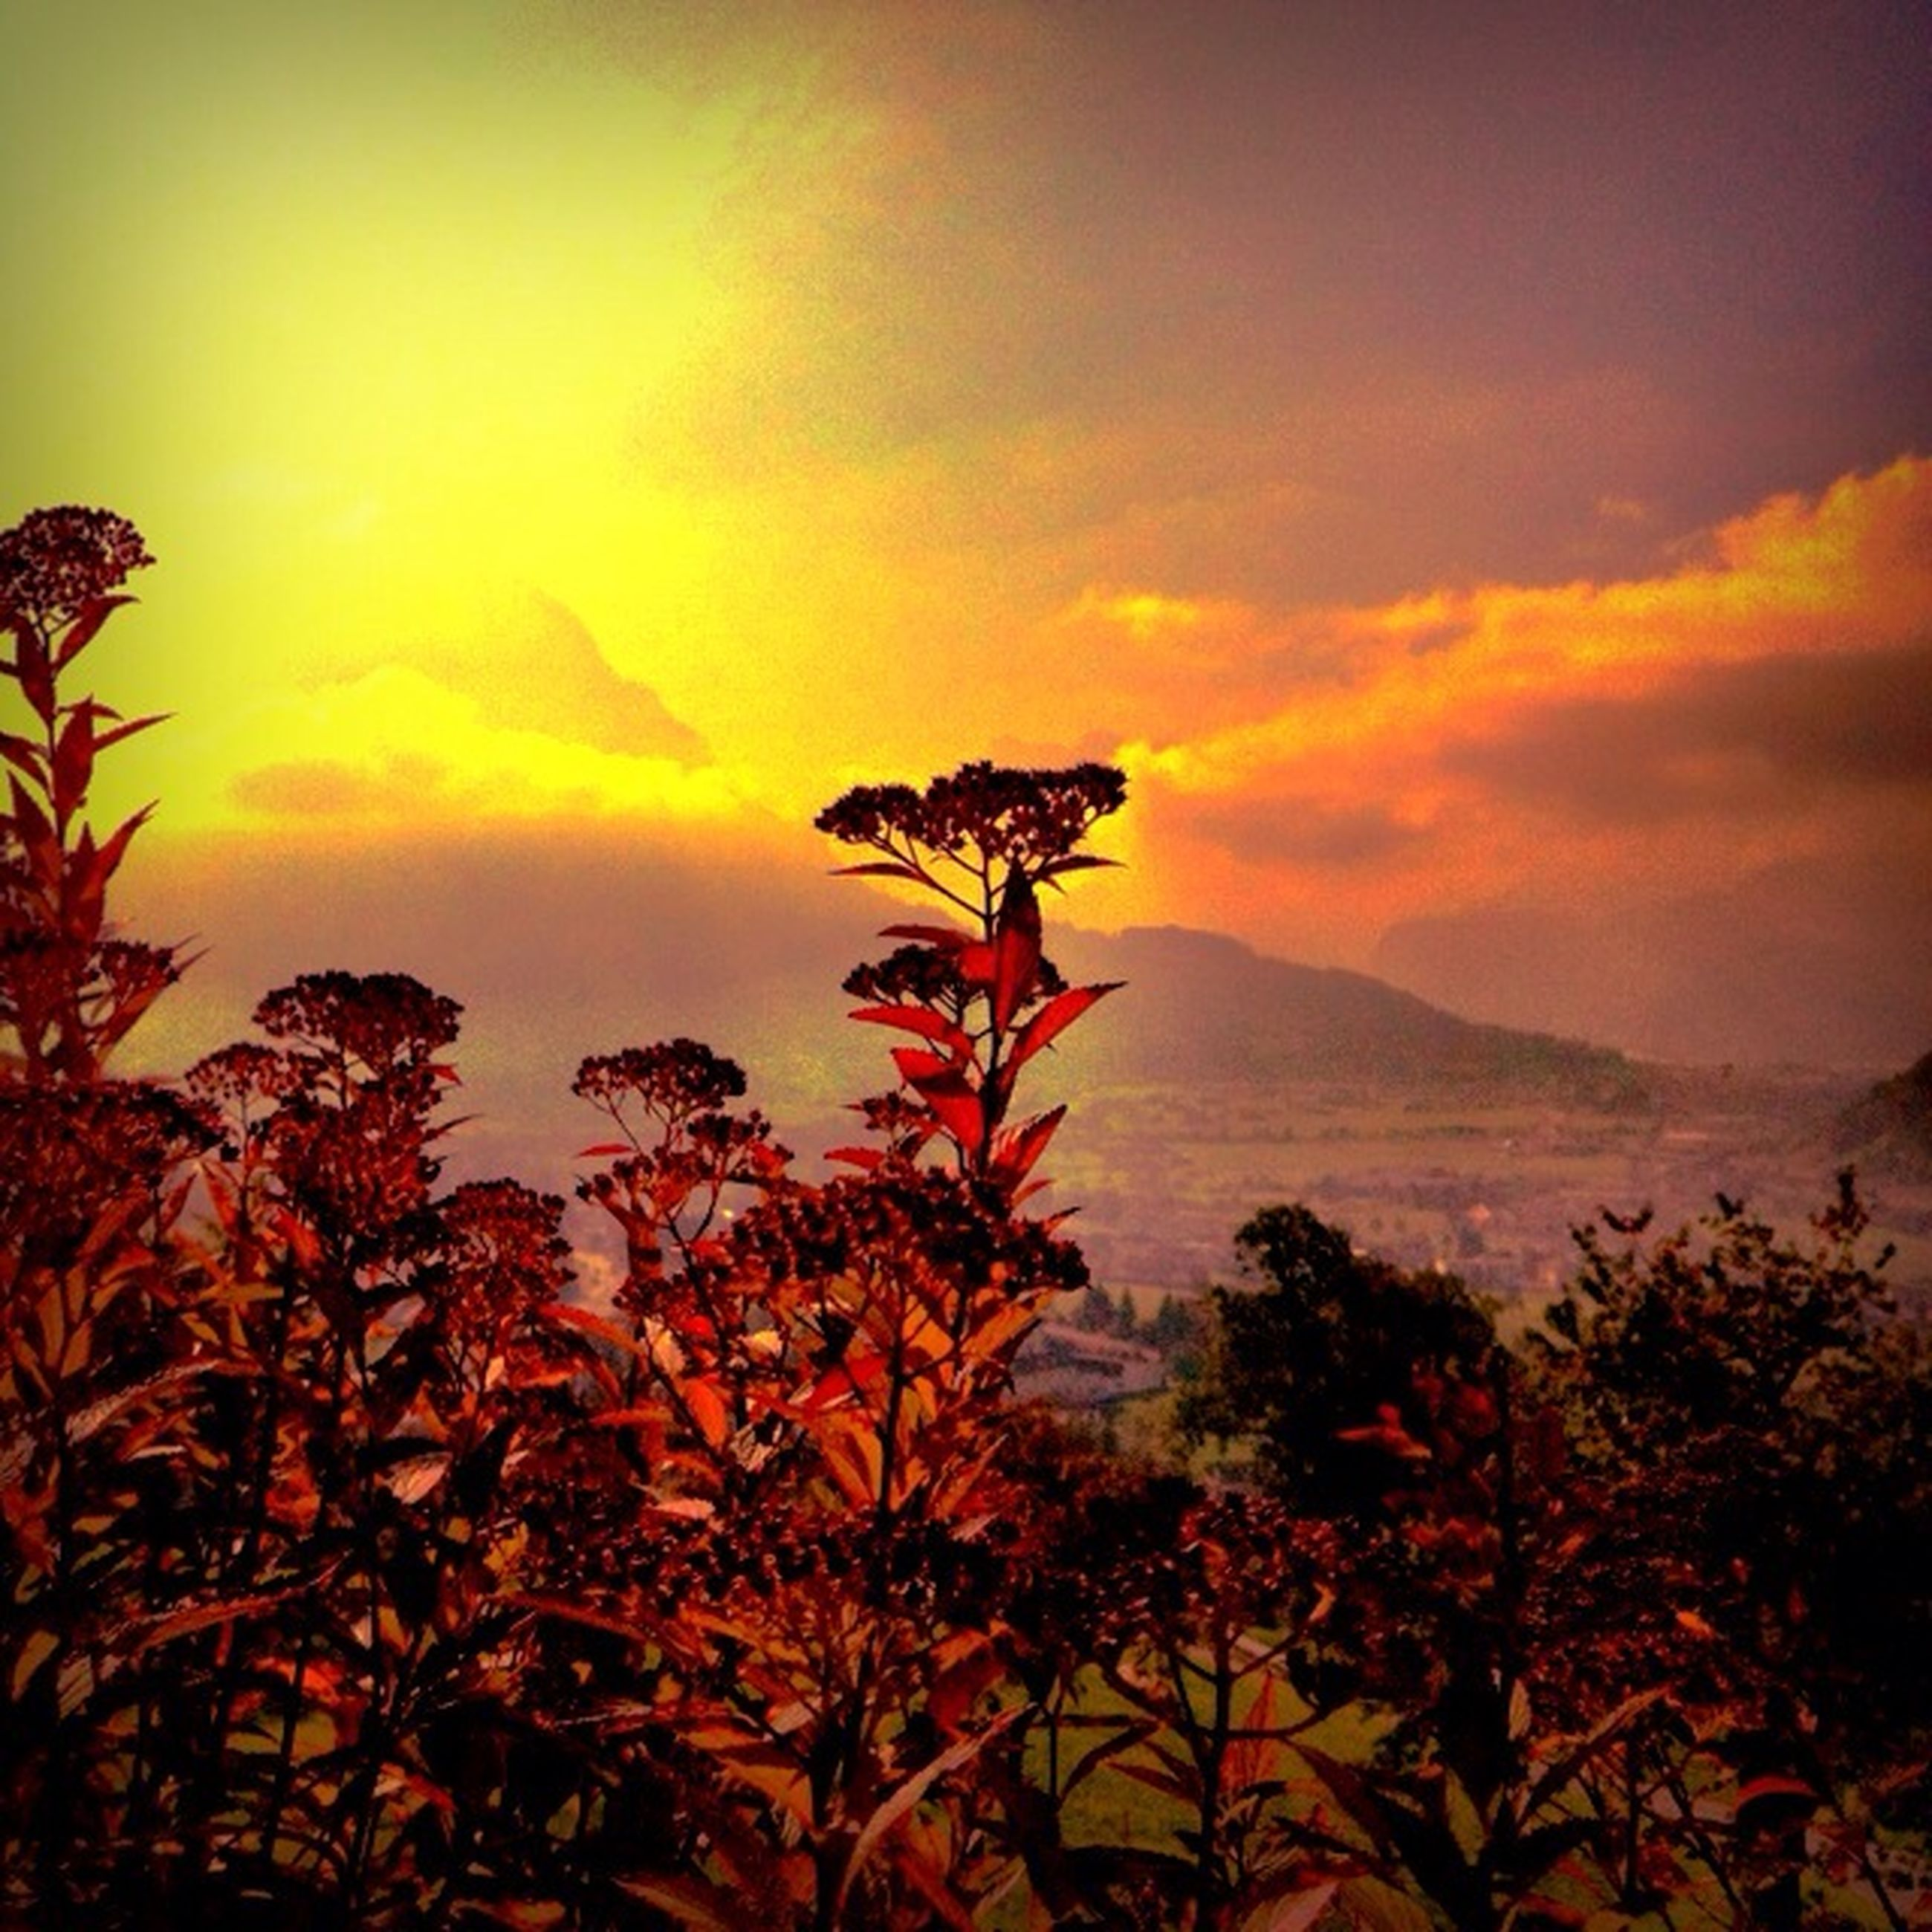 sunset, sky, beauty in nature, orange color, scenics, tranquil scene, tranquility, nature, cloud - sky, growth, plant, idyllic, silhouette, tree, dramatic sky, cloud, landscape, mountain, flower, outdoors